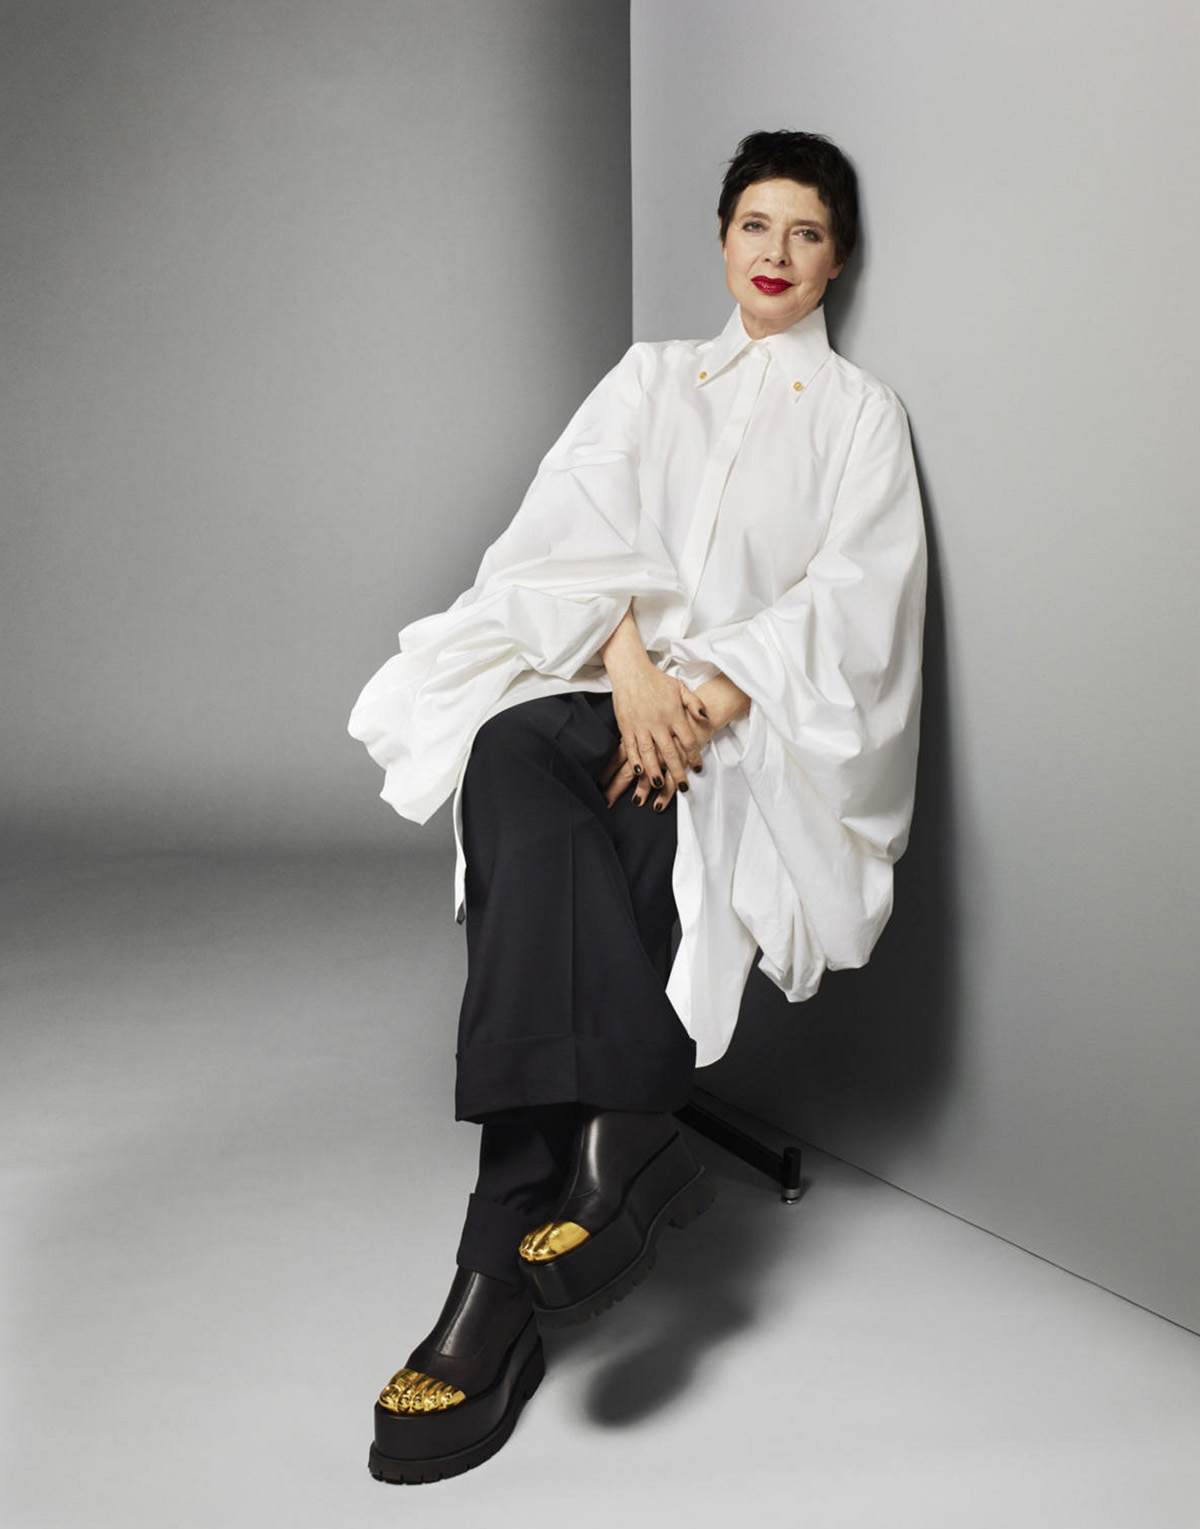 Isabella Rossellini by Terry Tsiolis for Harper's Bazaar US May 2021